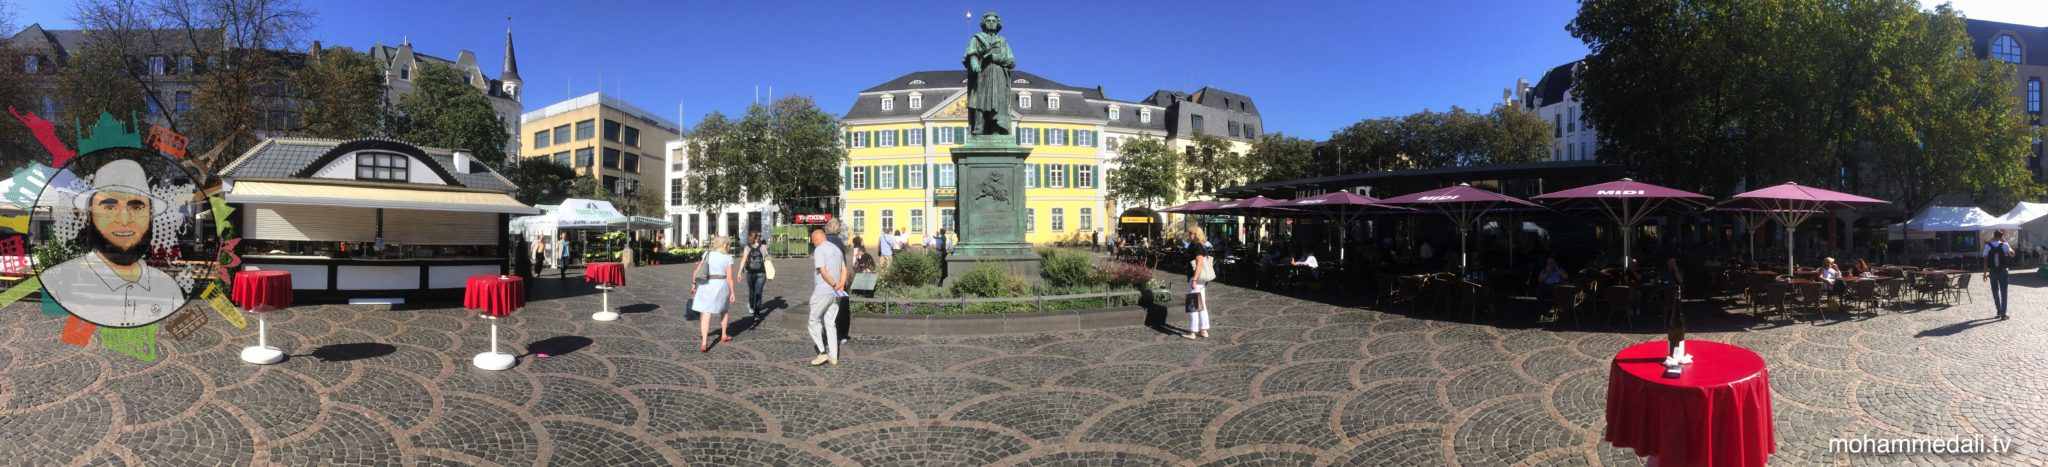 Amazing day out in the city of Bonn. View on Beethoven statue.